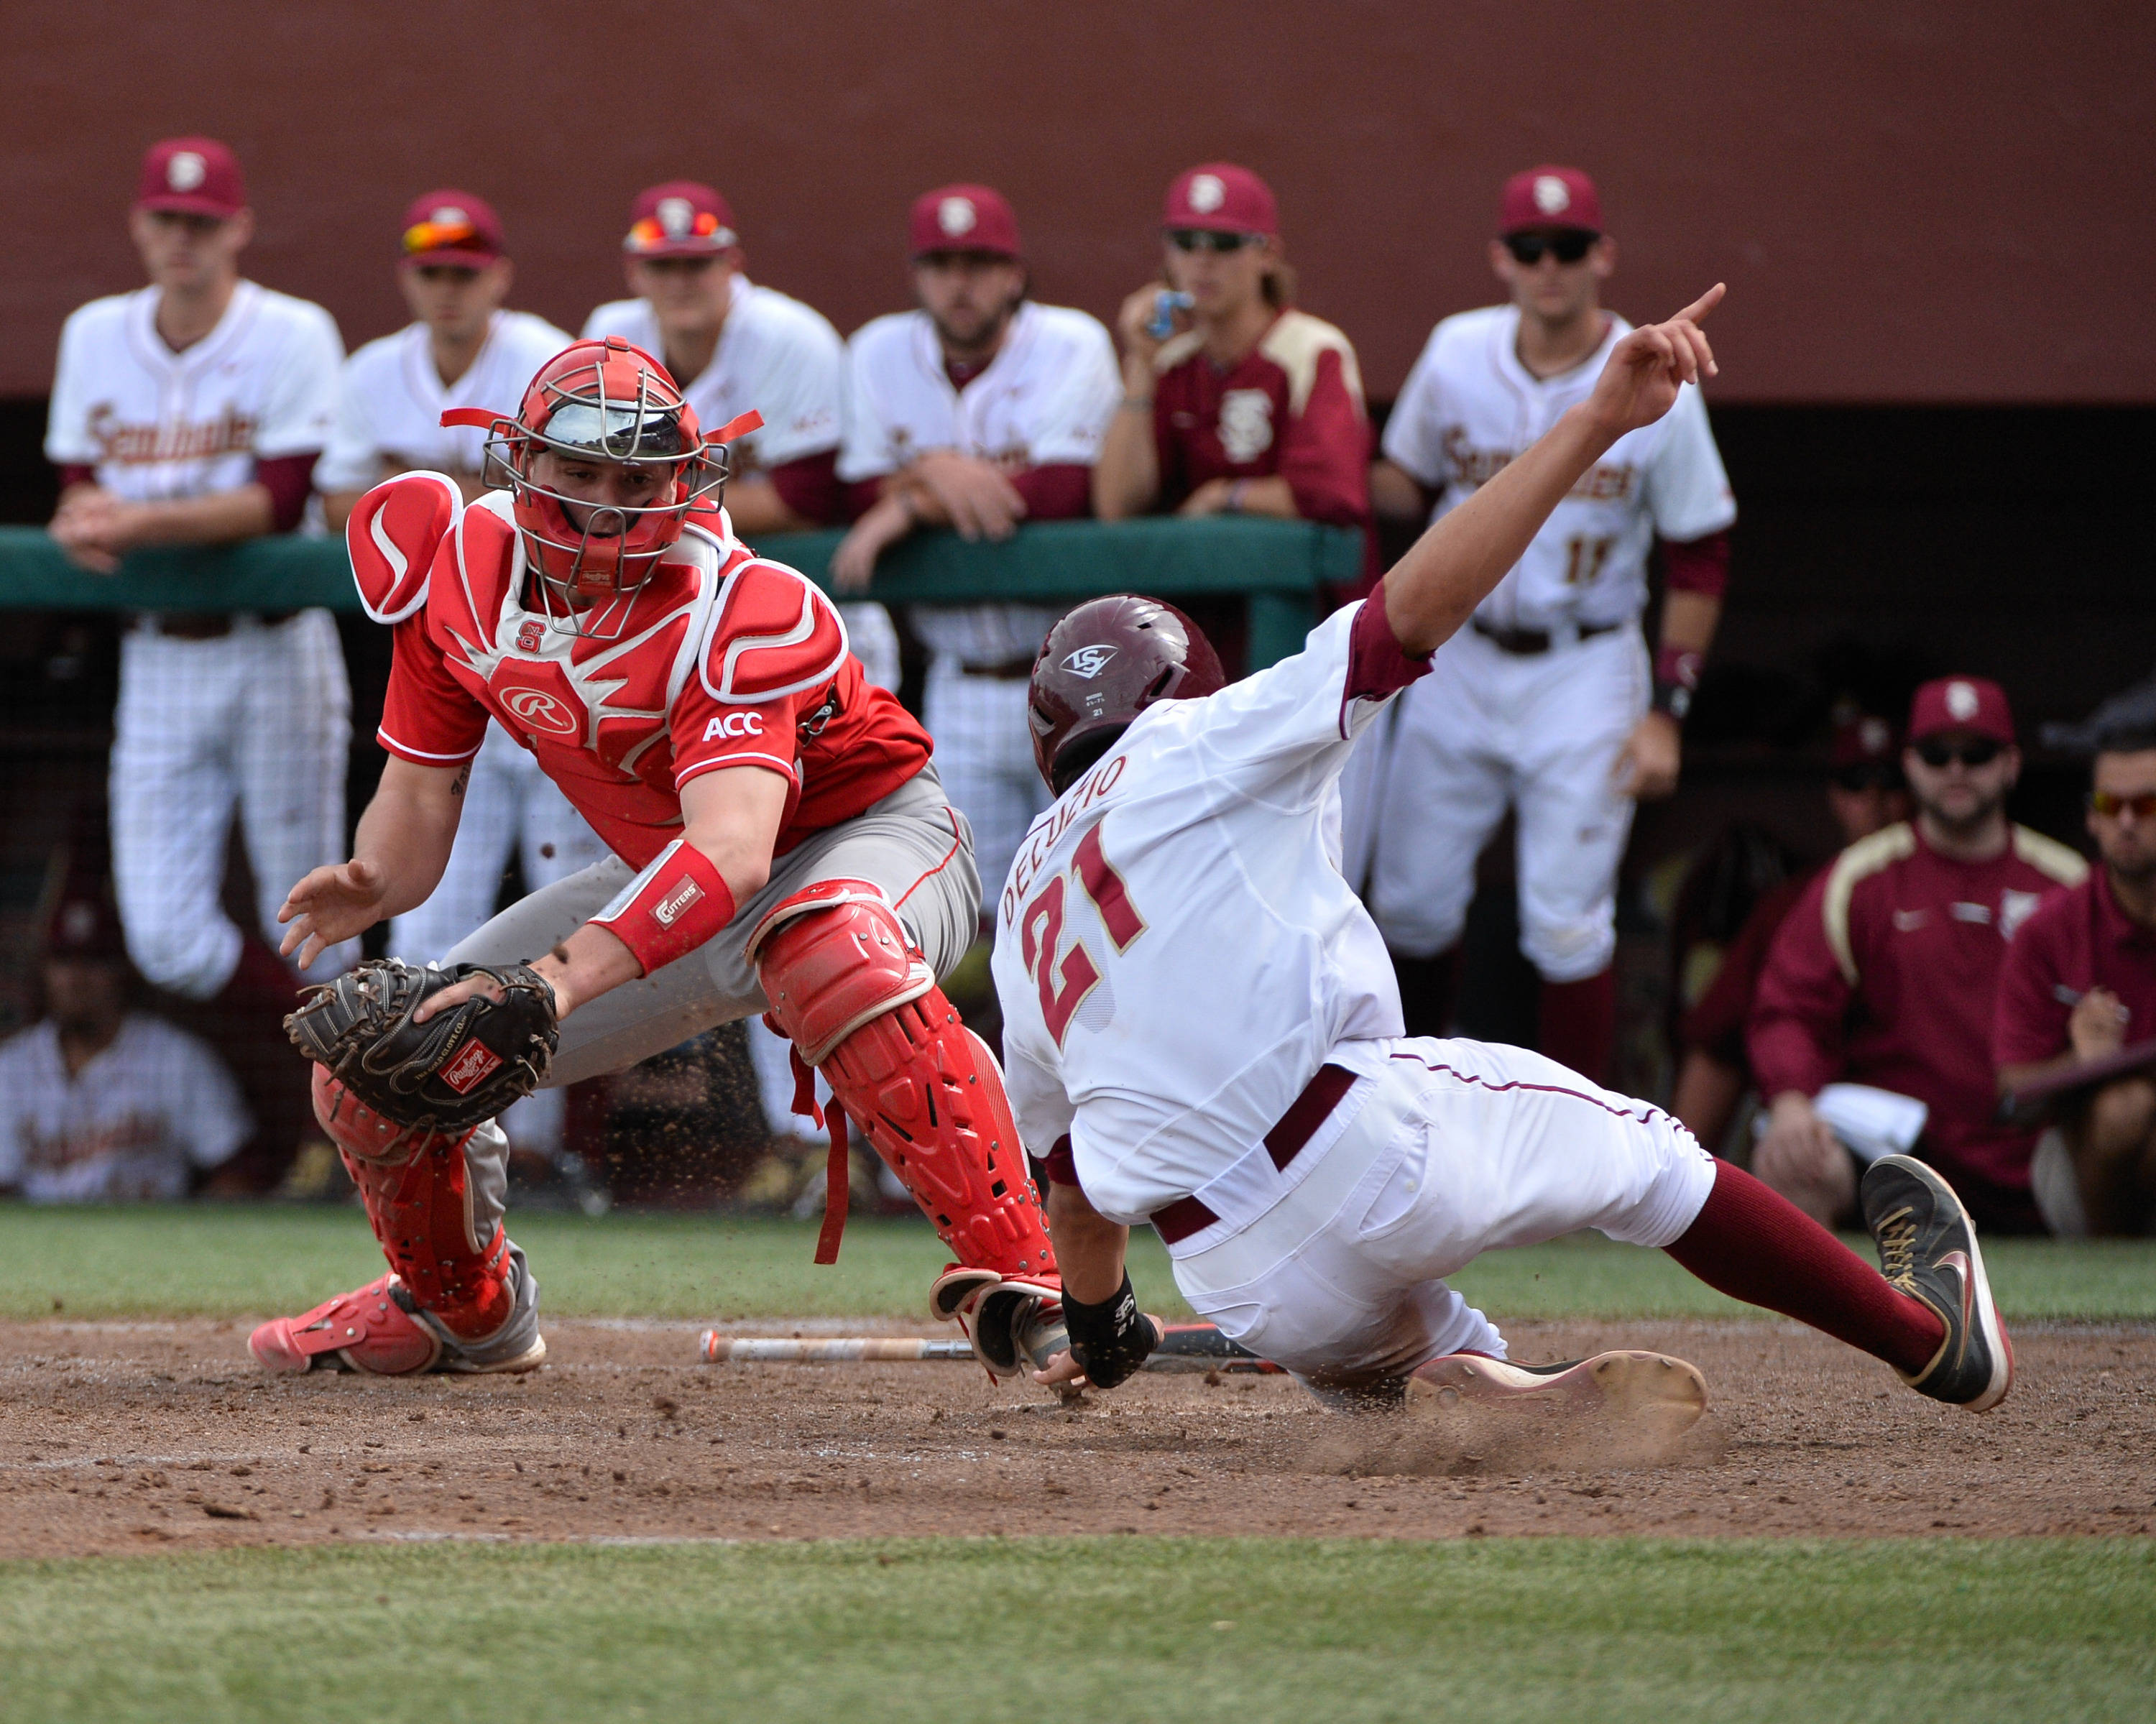 Ben DeLuzio slides ahead of the tag at home.